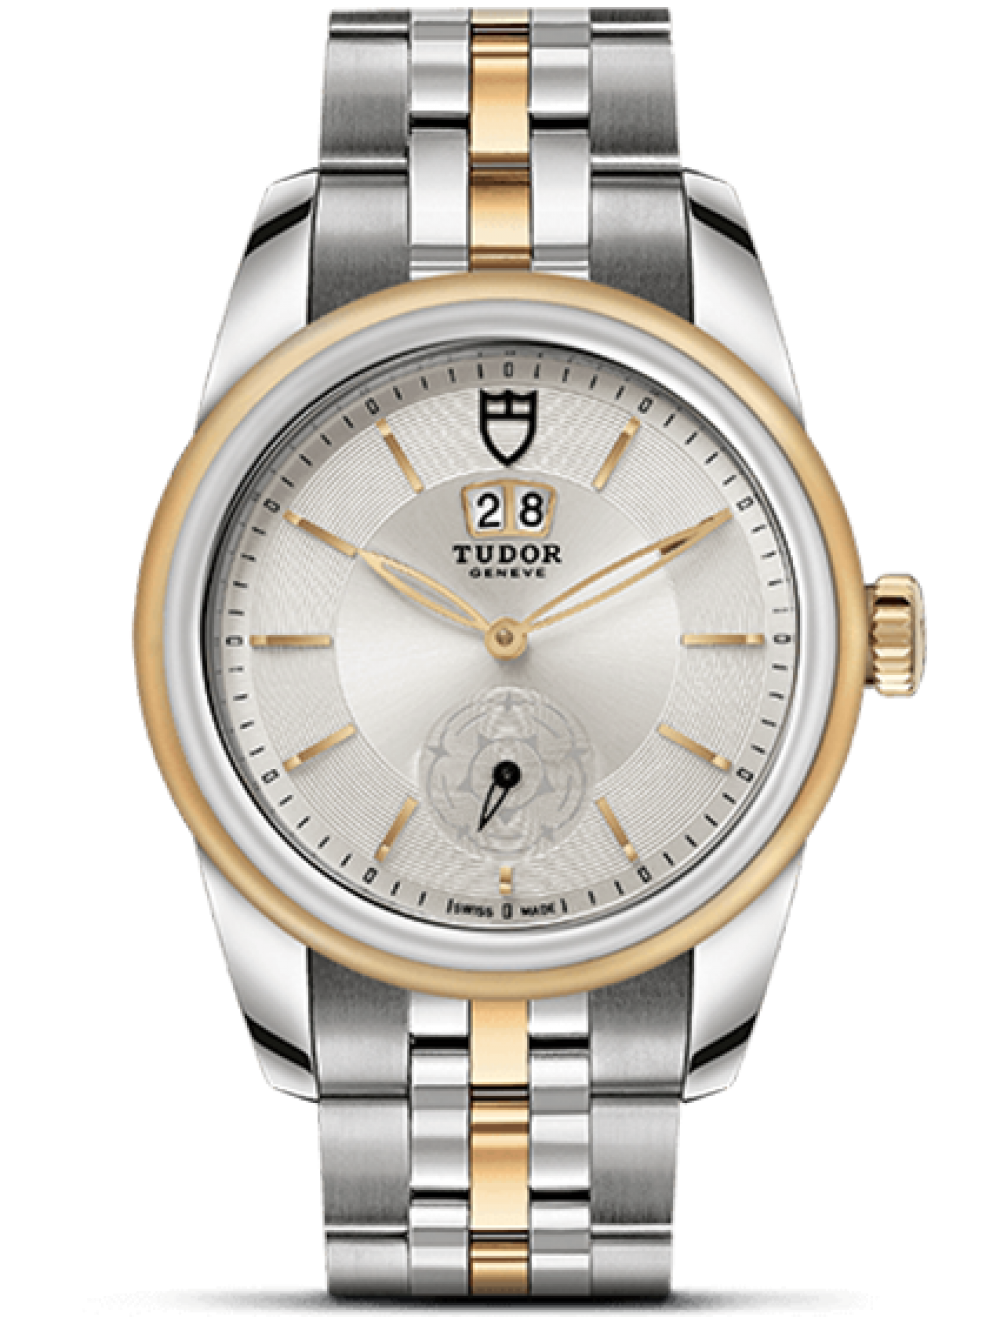 TUDOR GLAMOUR DOUBLE DATE 42 MM 57003